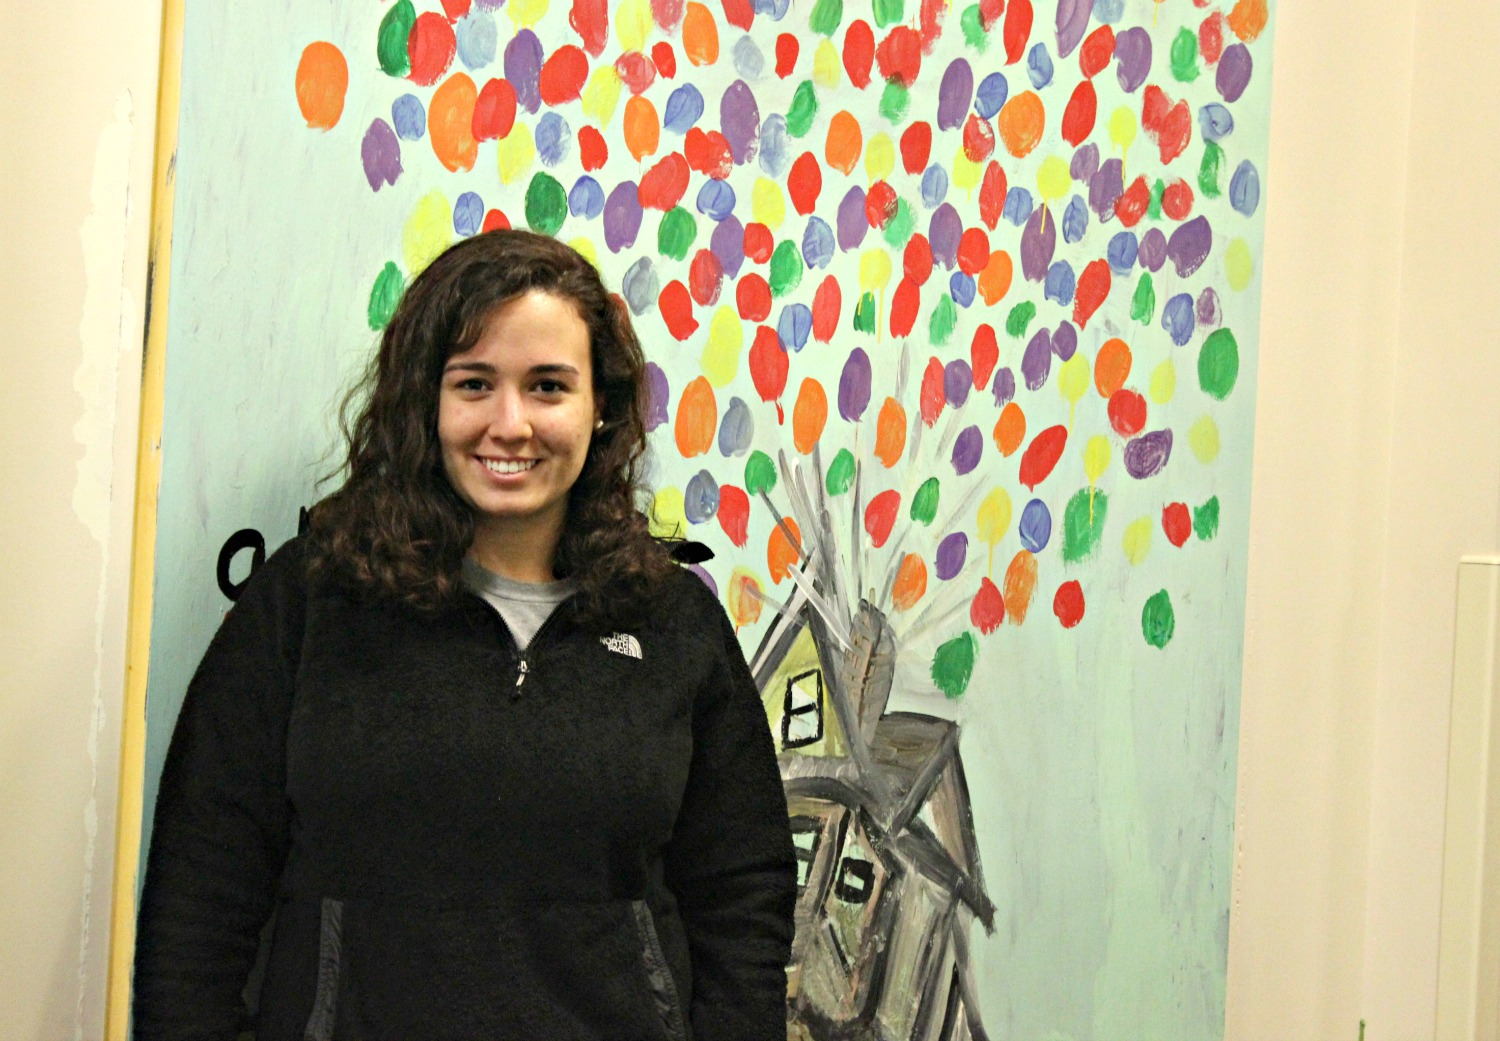 Mental Health Specialist Maria standing in front of artwork done by inpatient mental health patients